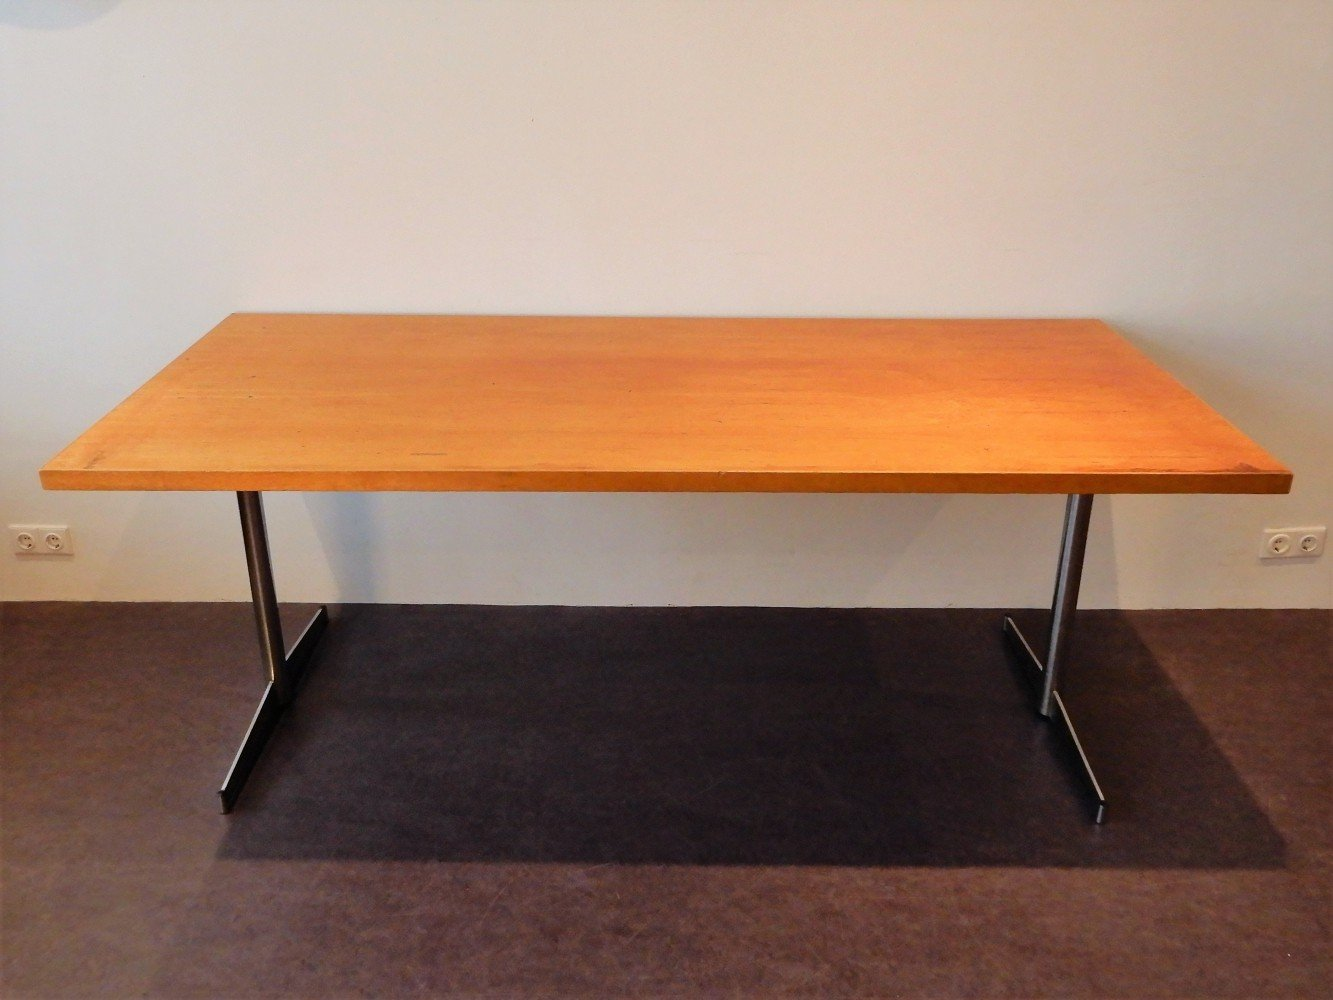 Large industrial dining table from former school building